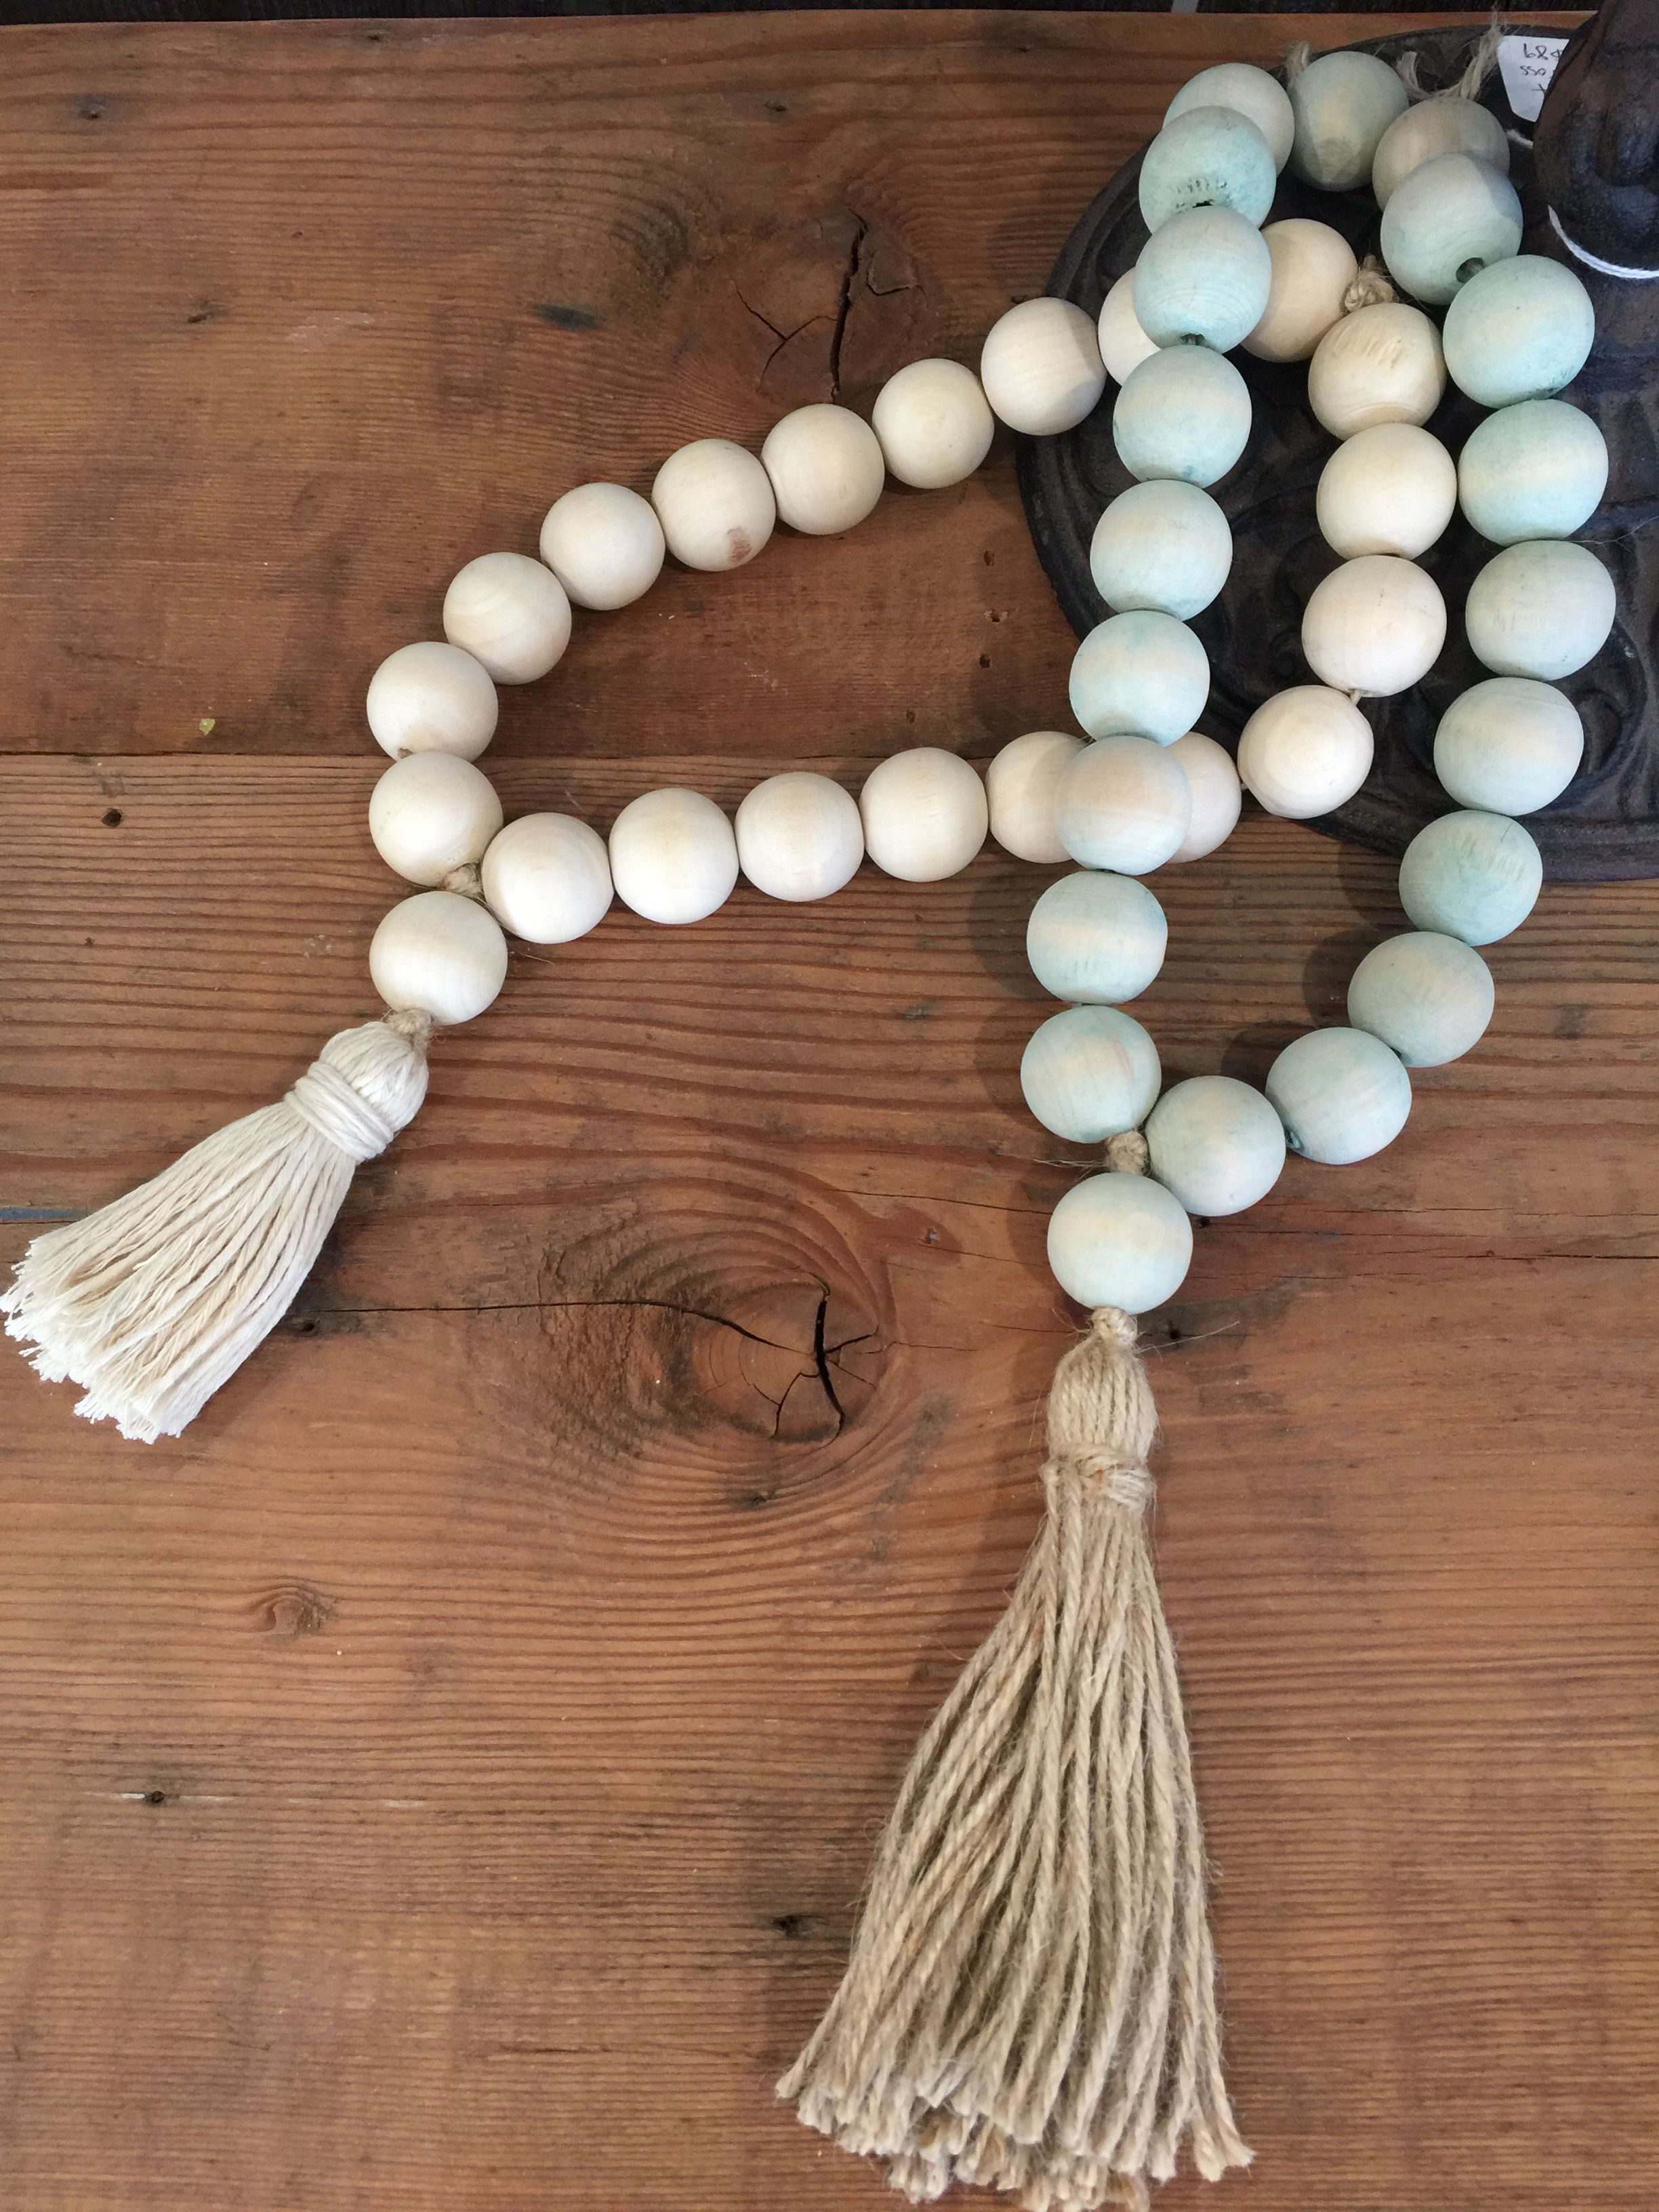 Kralen Gordijn Action Boho Wood Decor Beads With Cotton Tassel Available At Vintage